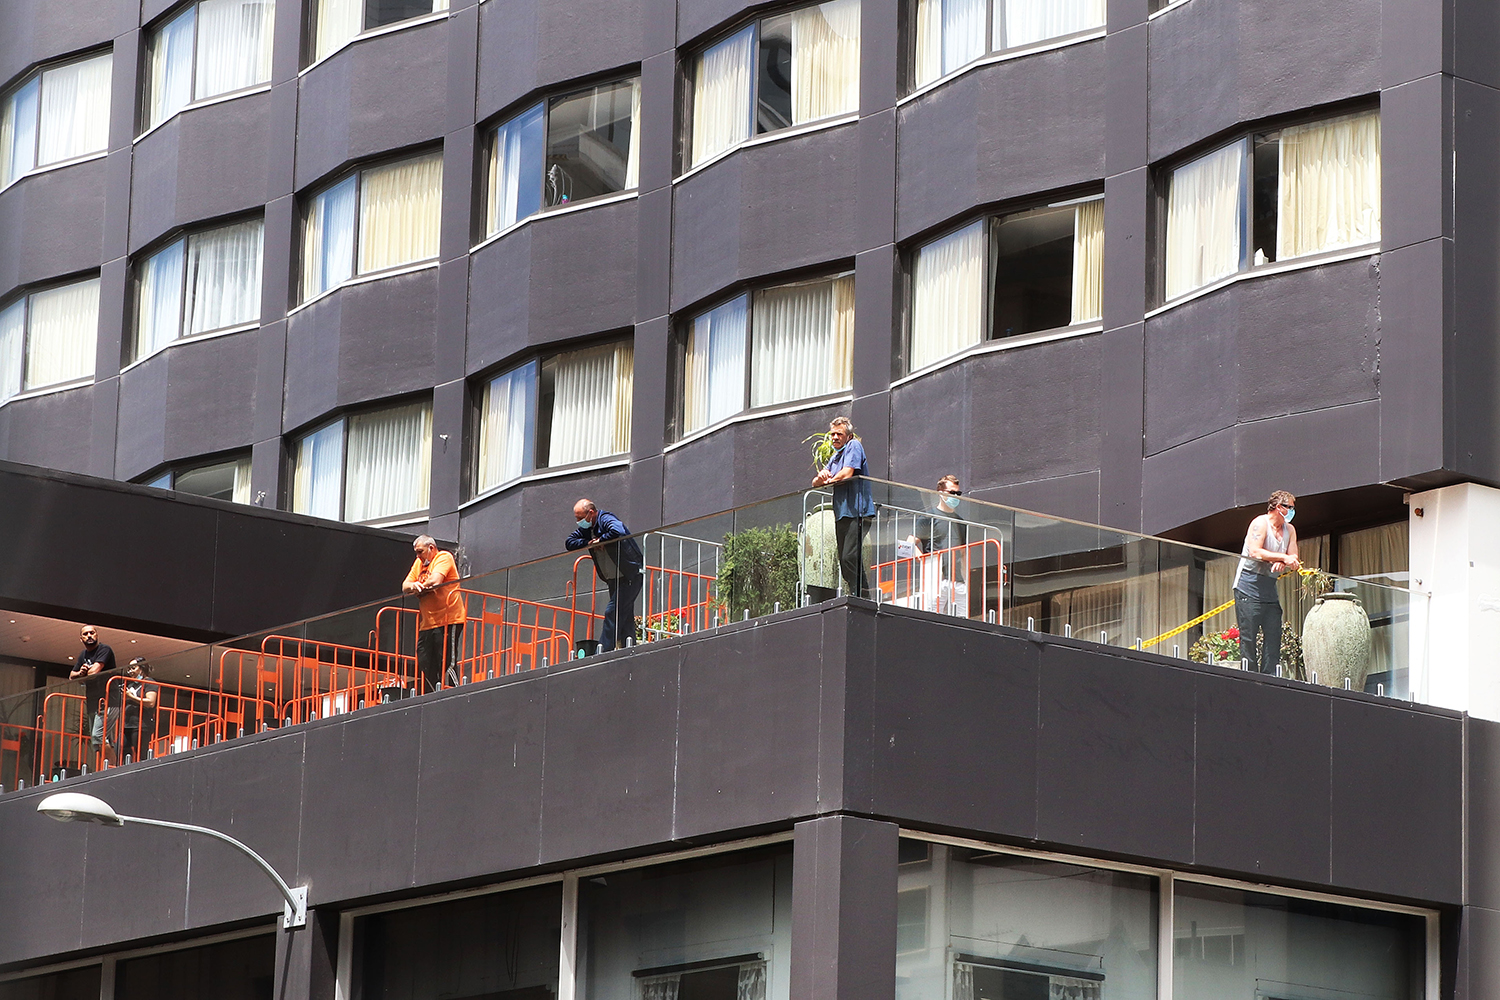 Quarantined people take in the view from a rooftop terrace at the Grand Mercure Hotel, used to isolate returning New Zealanders during coronavirus quarantine protocols, in Auckland on Oct. 29, 2020.